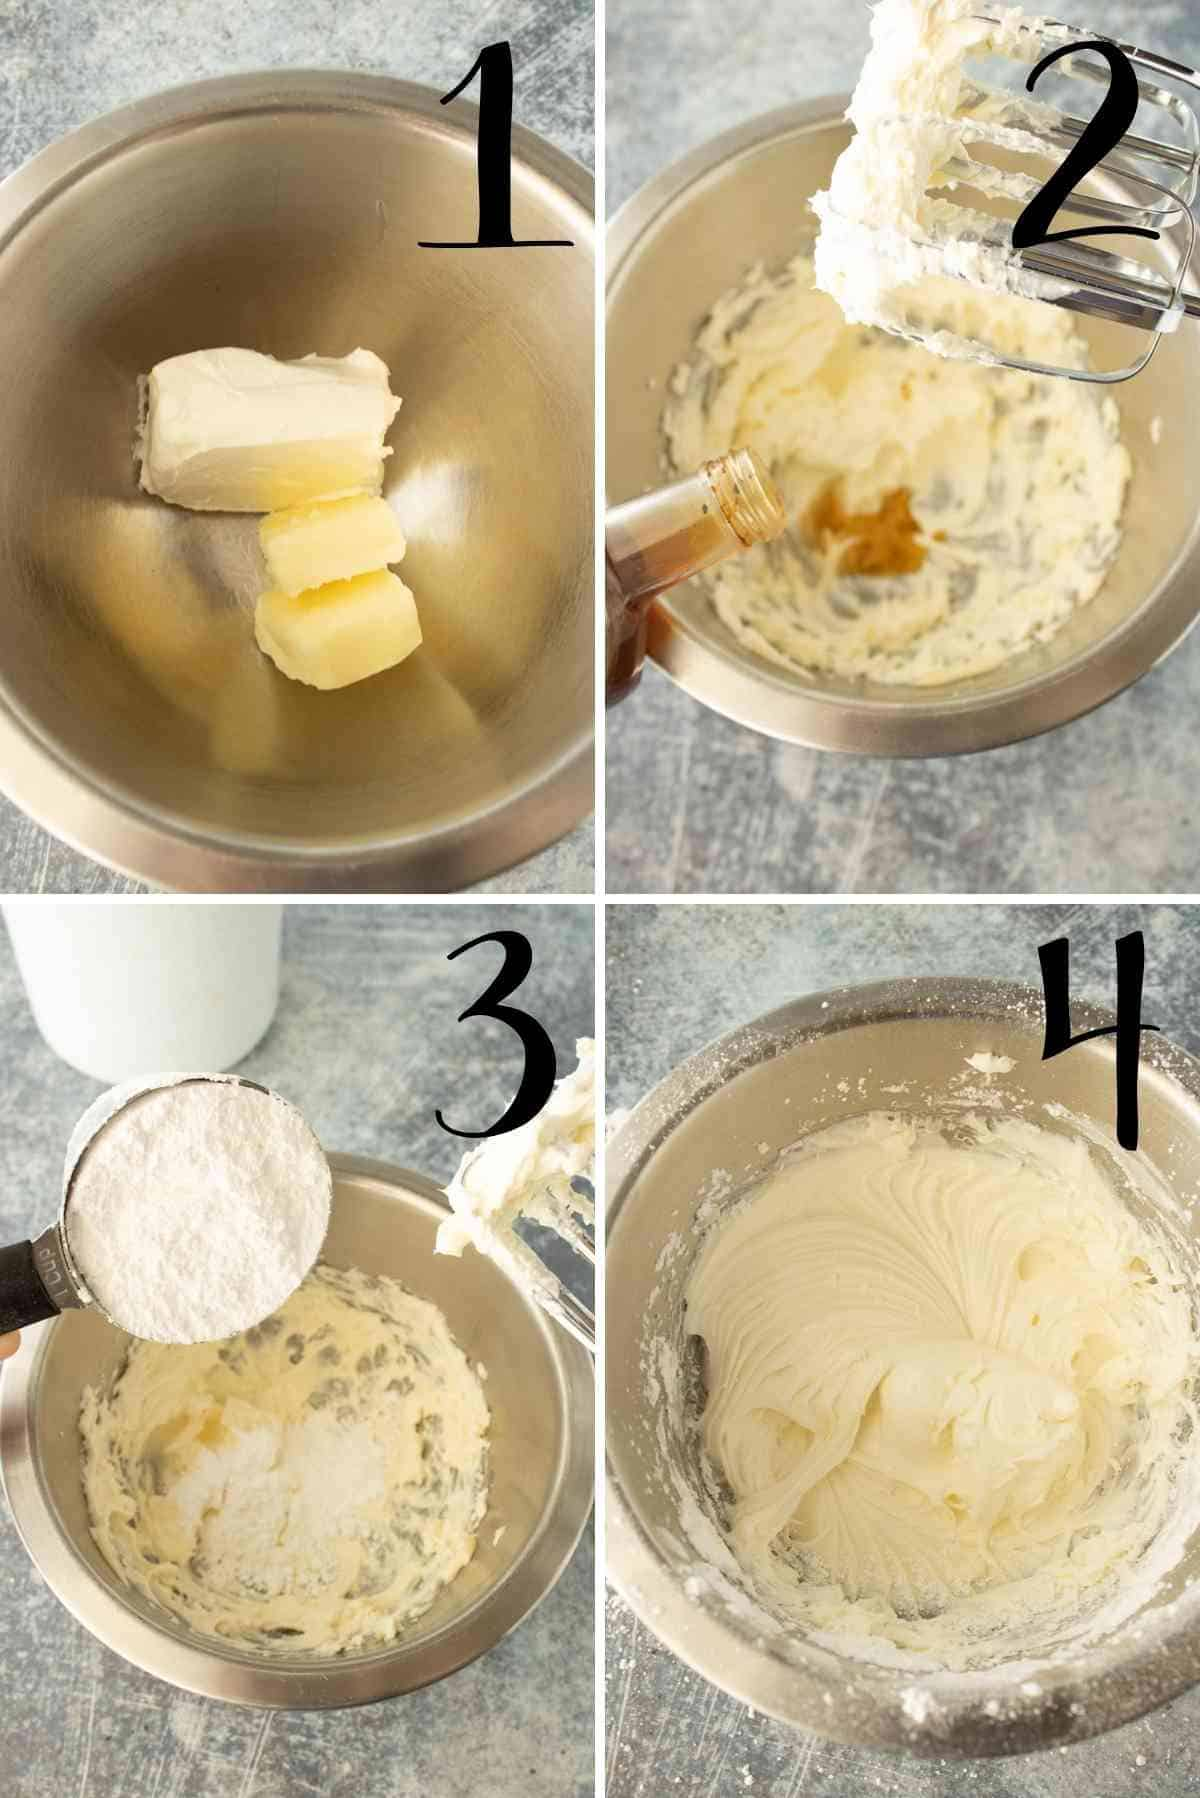 Beat the cream cheese, butter, vanilla, and powdered sugar to make the cream cheese frosting.